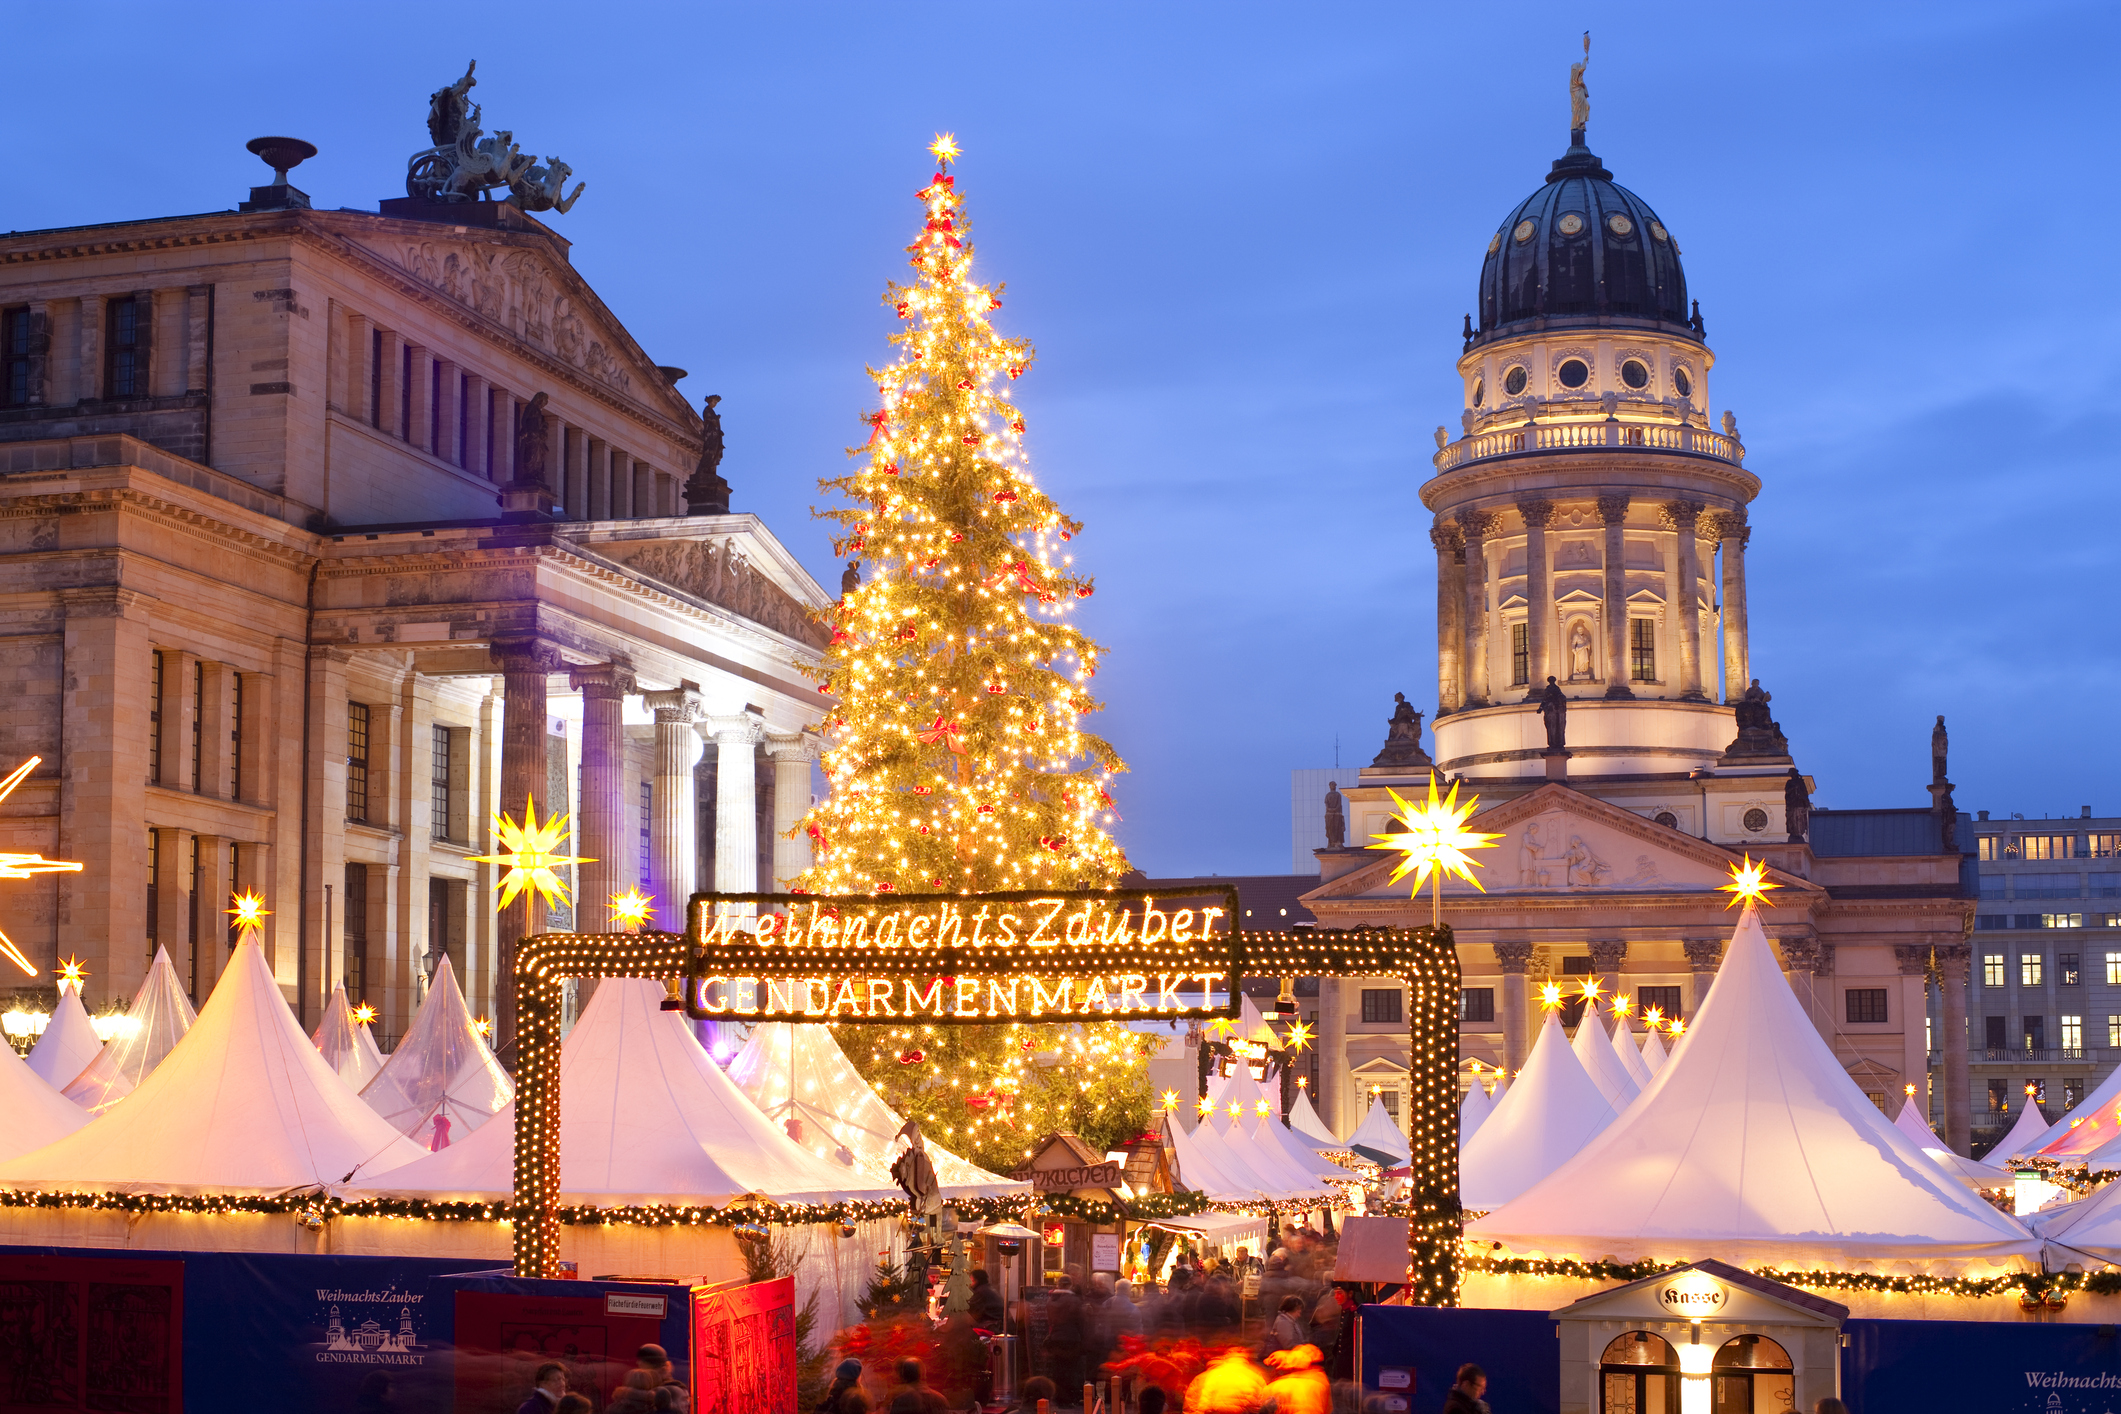 If the Gendarmenmarkt in Berlin can't get you in the festive spirit, nothing can (Picture: Getty)